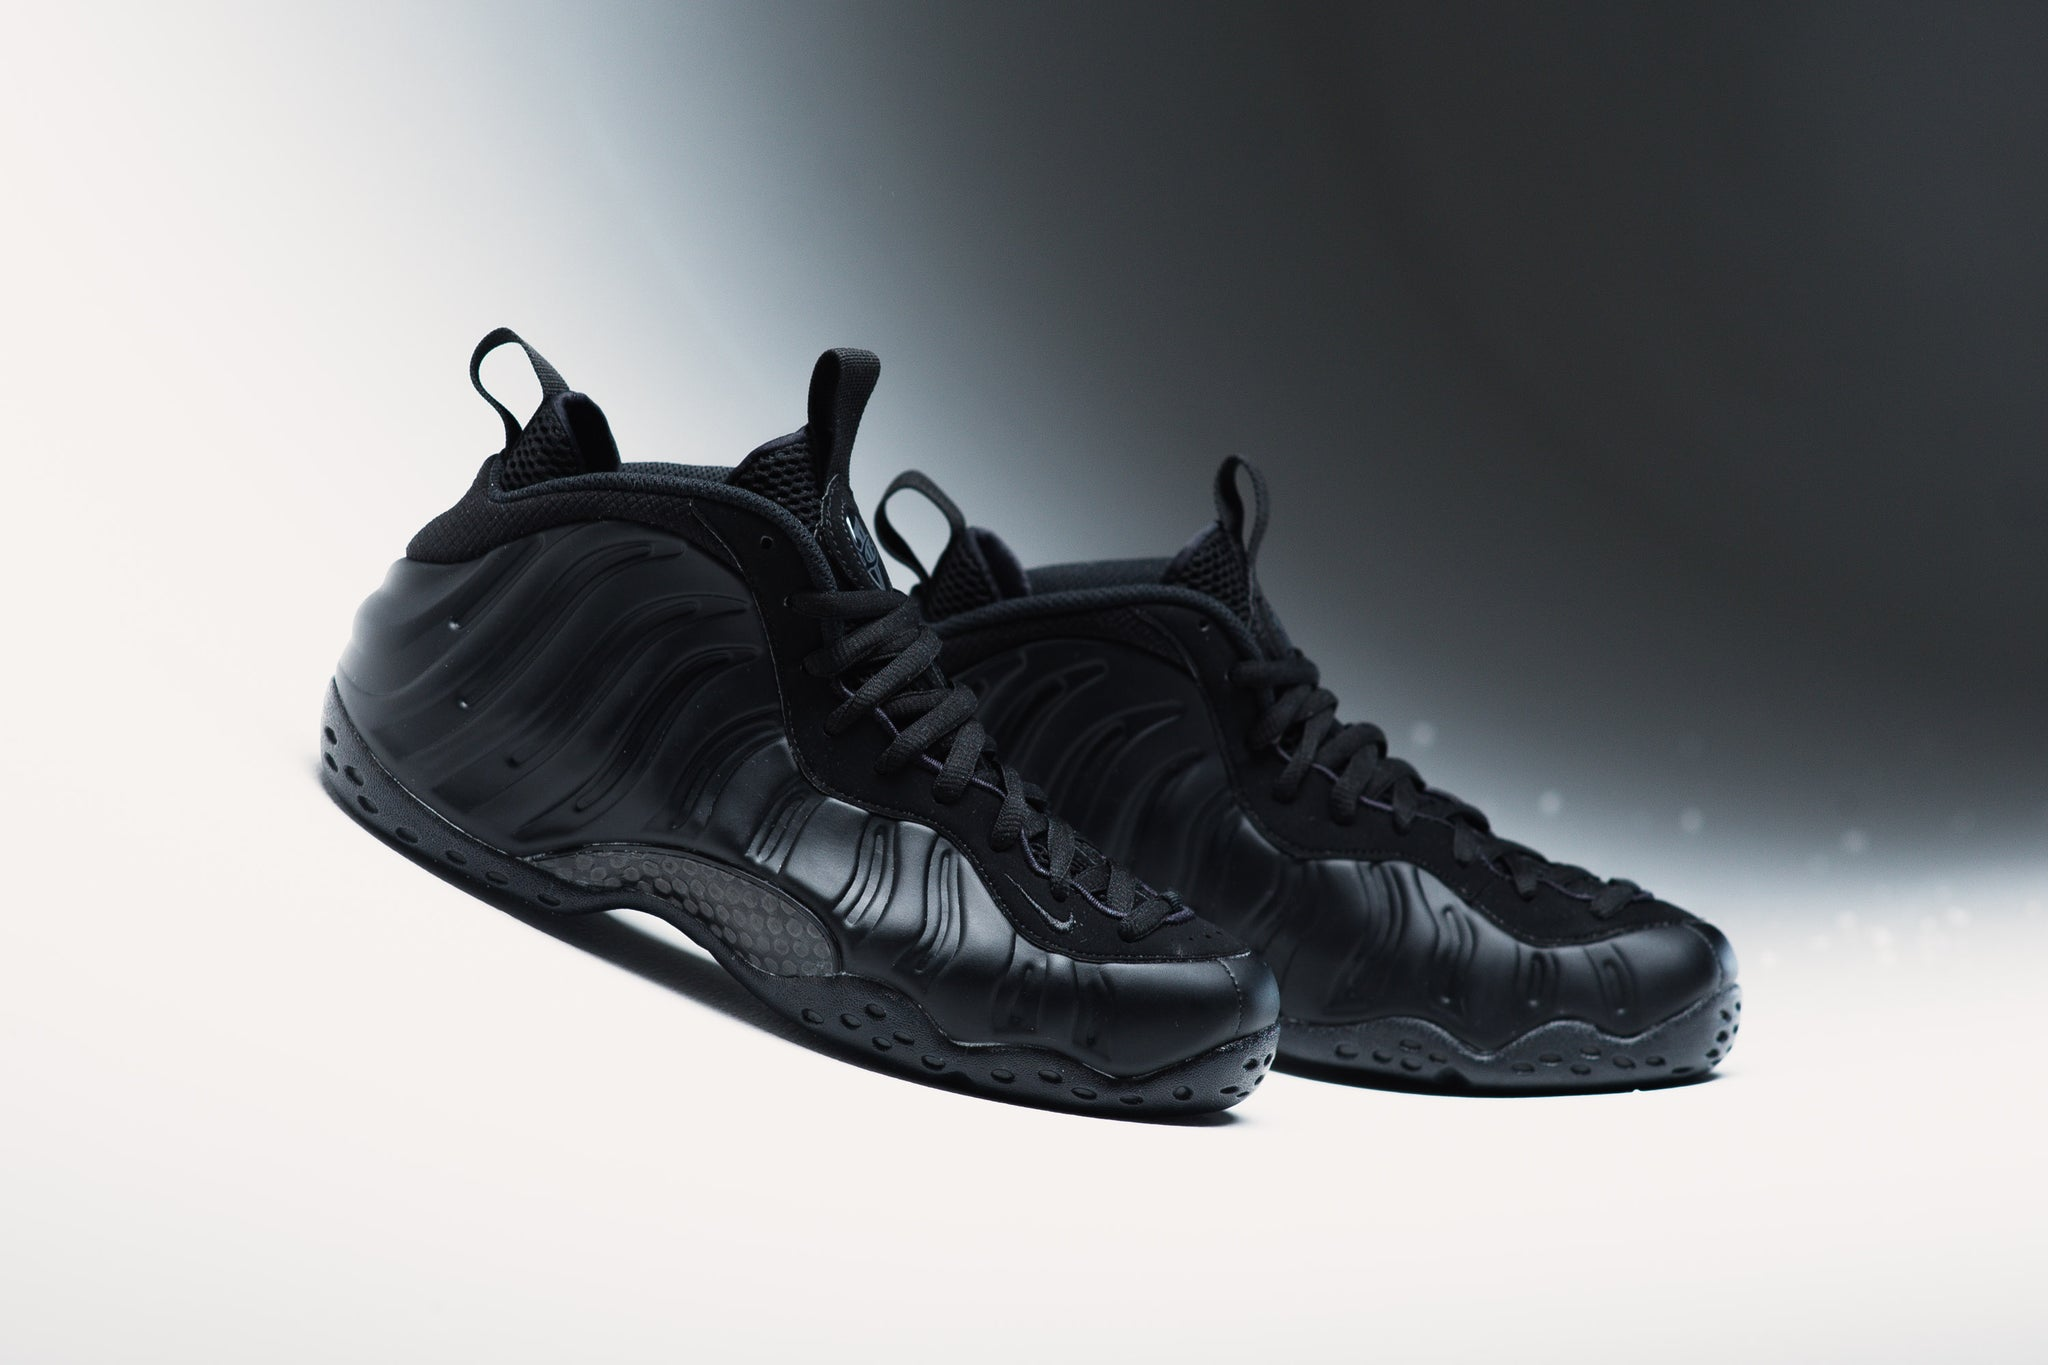 Nike Air Foamposite One Rust Pink Authentic Verification ...